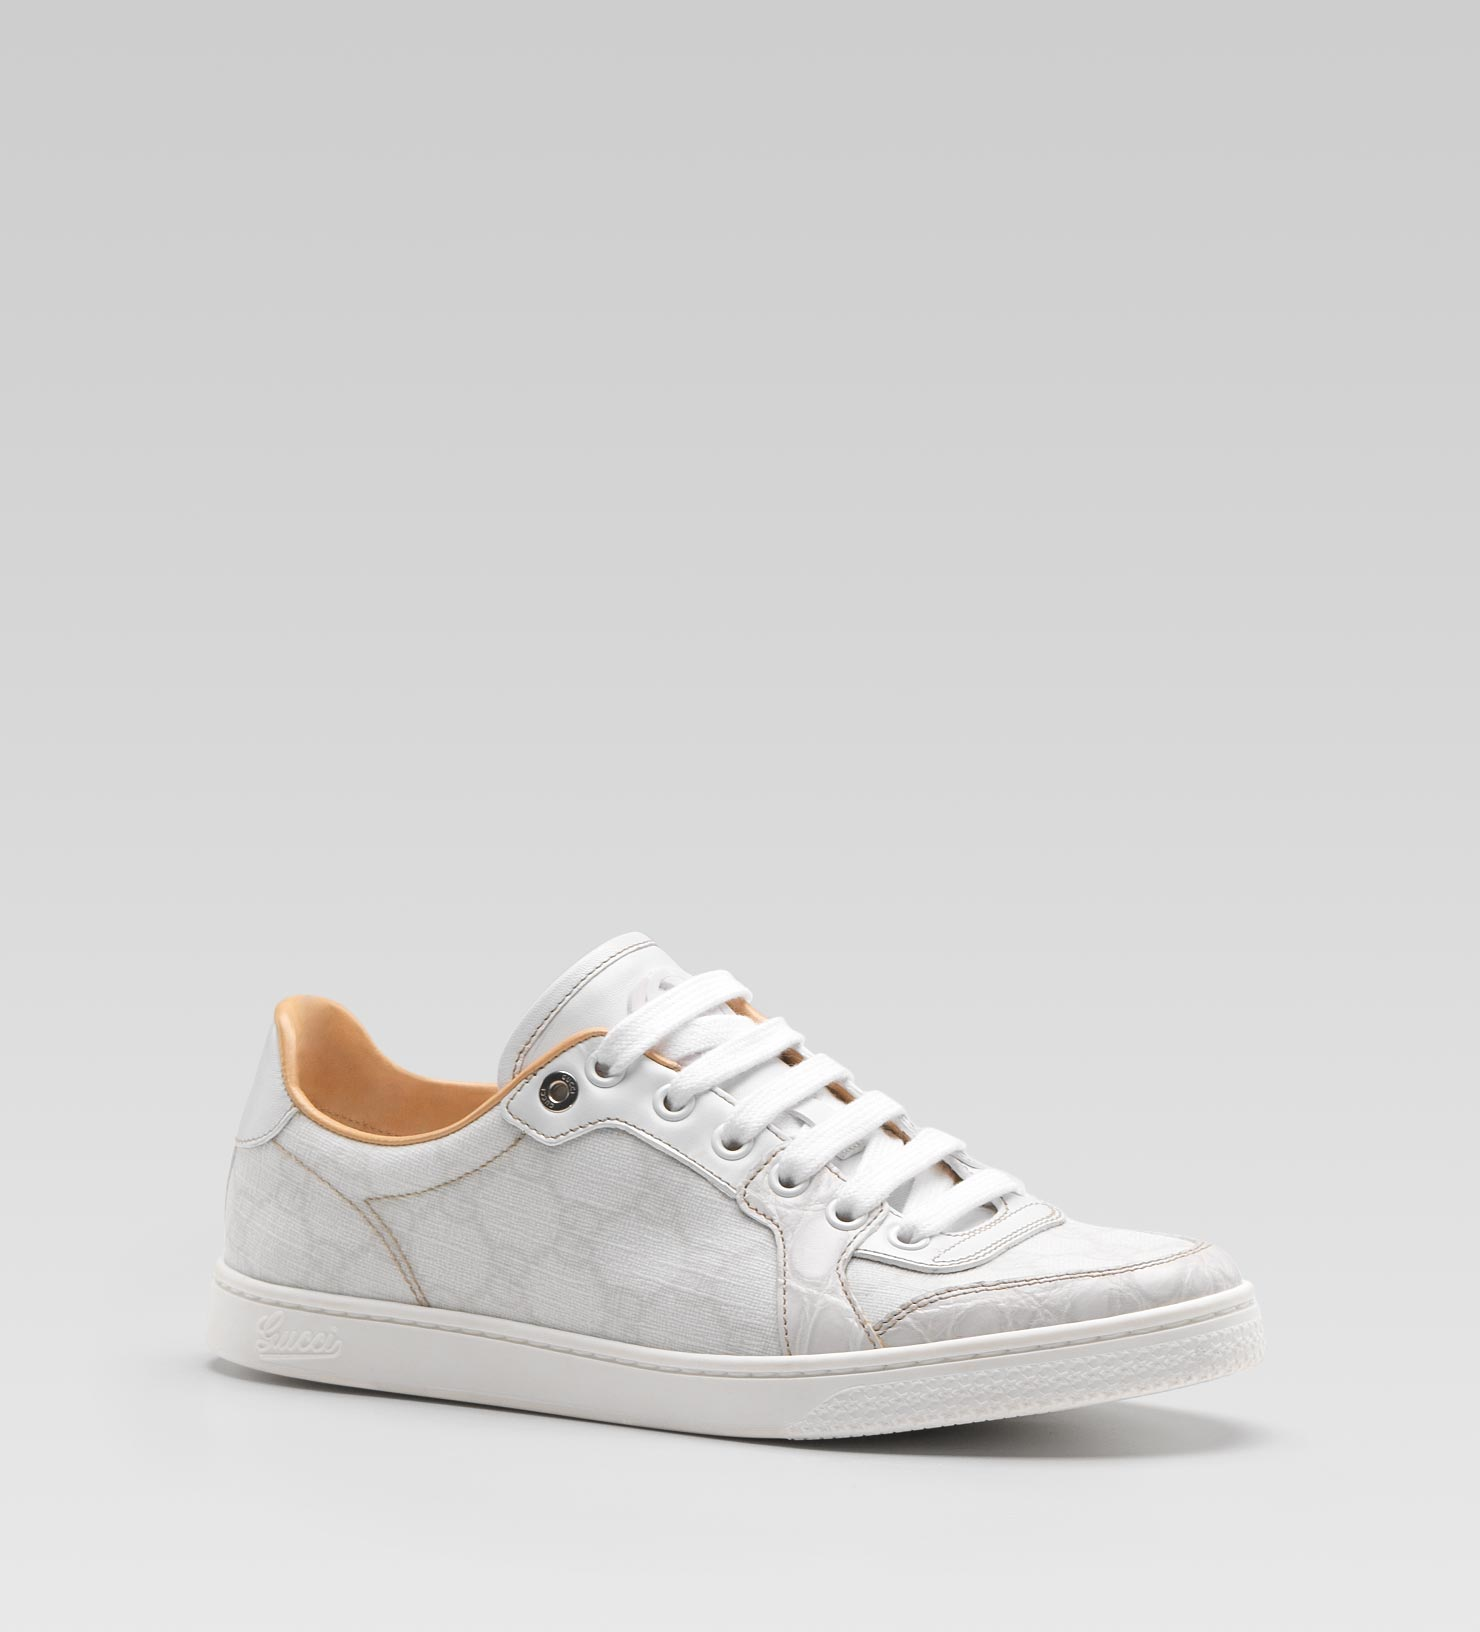 de314ef46f3 Gucci Coda Low Laceup Sneaker with Interlocking G Detail in White - Lyst